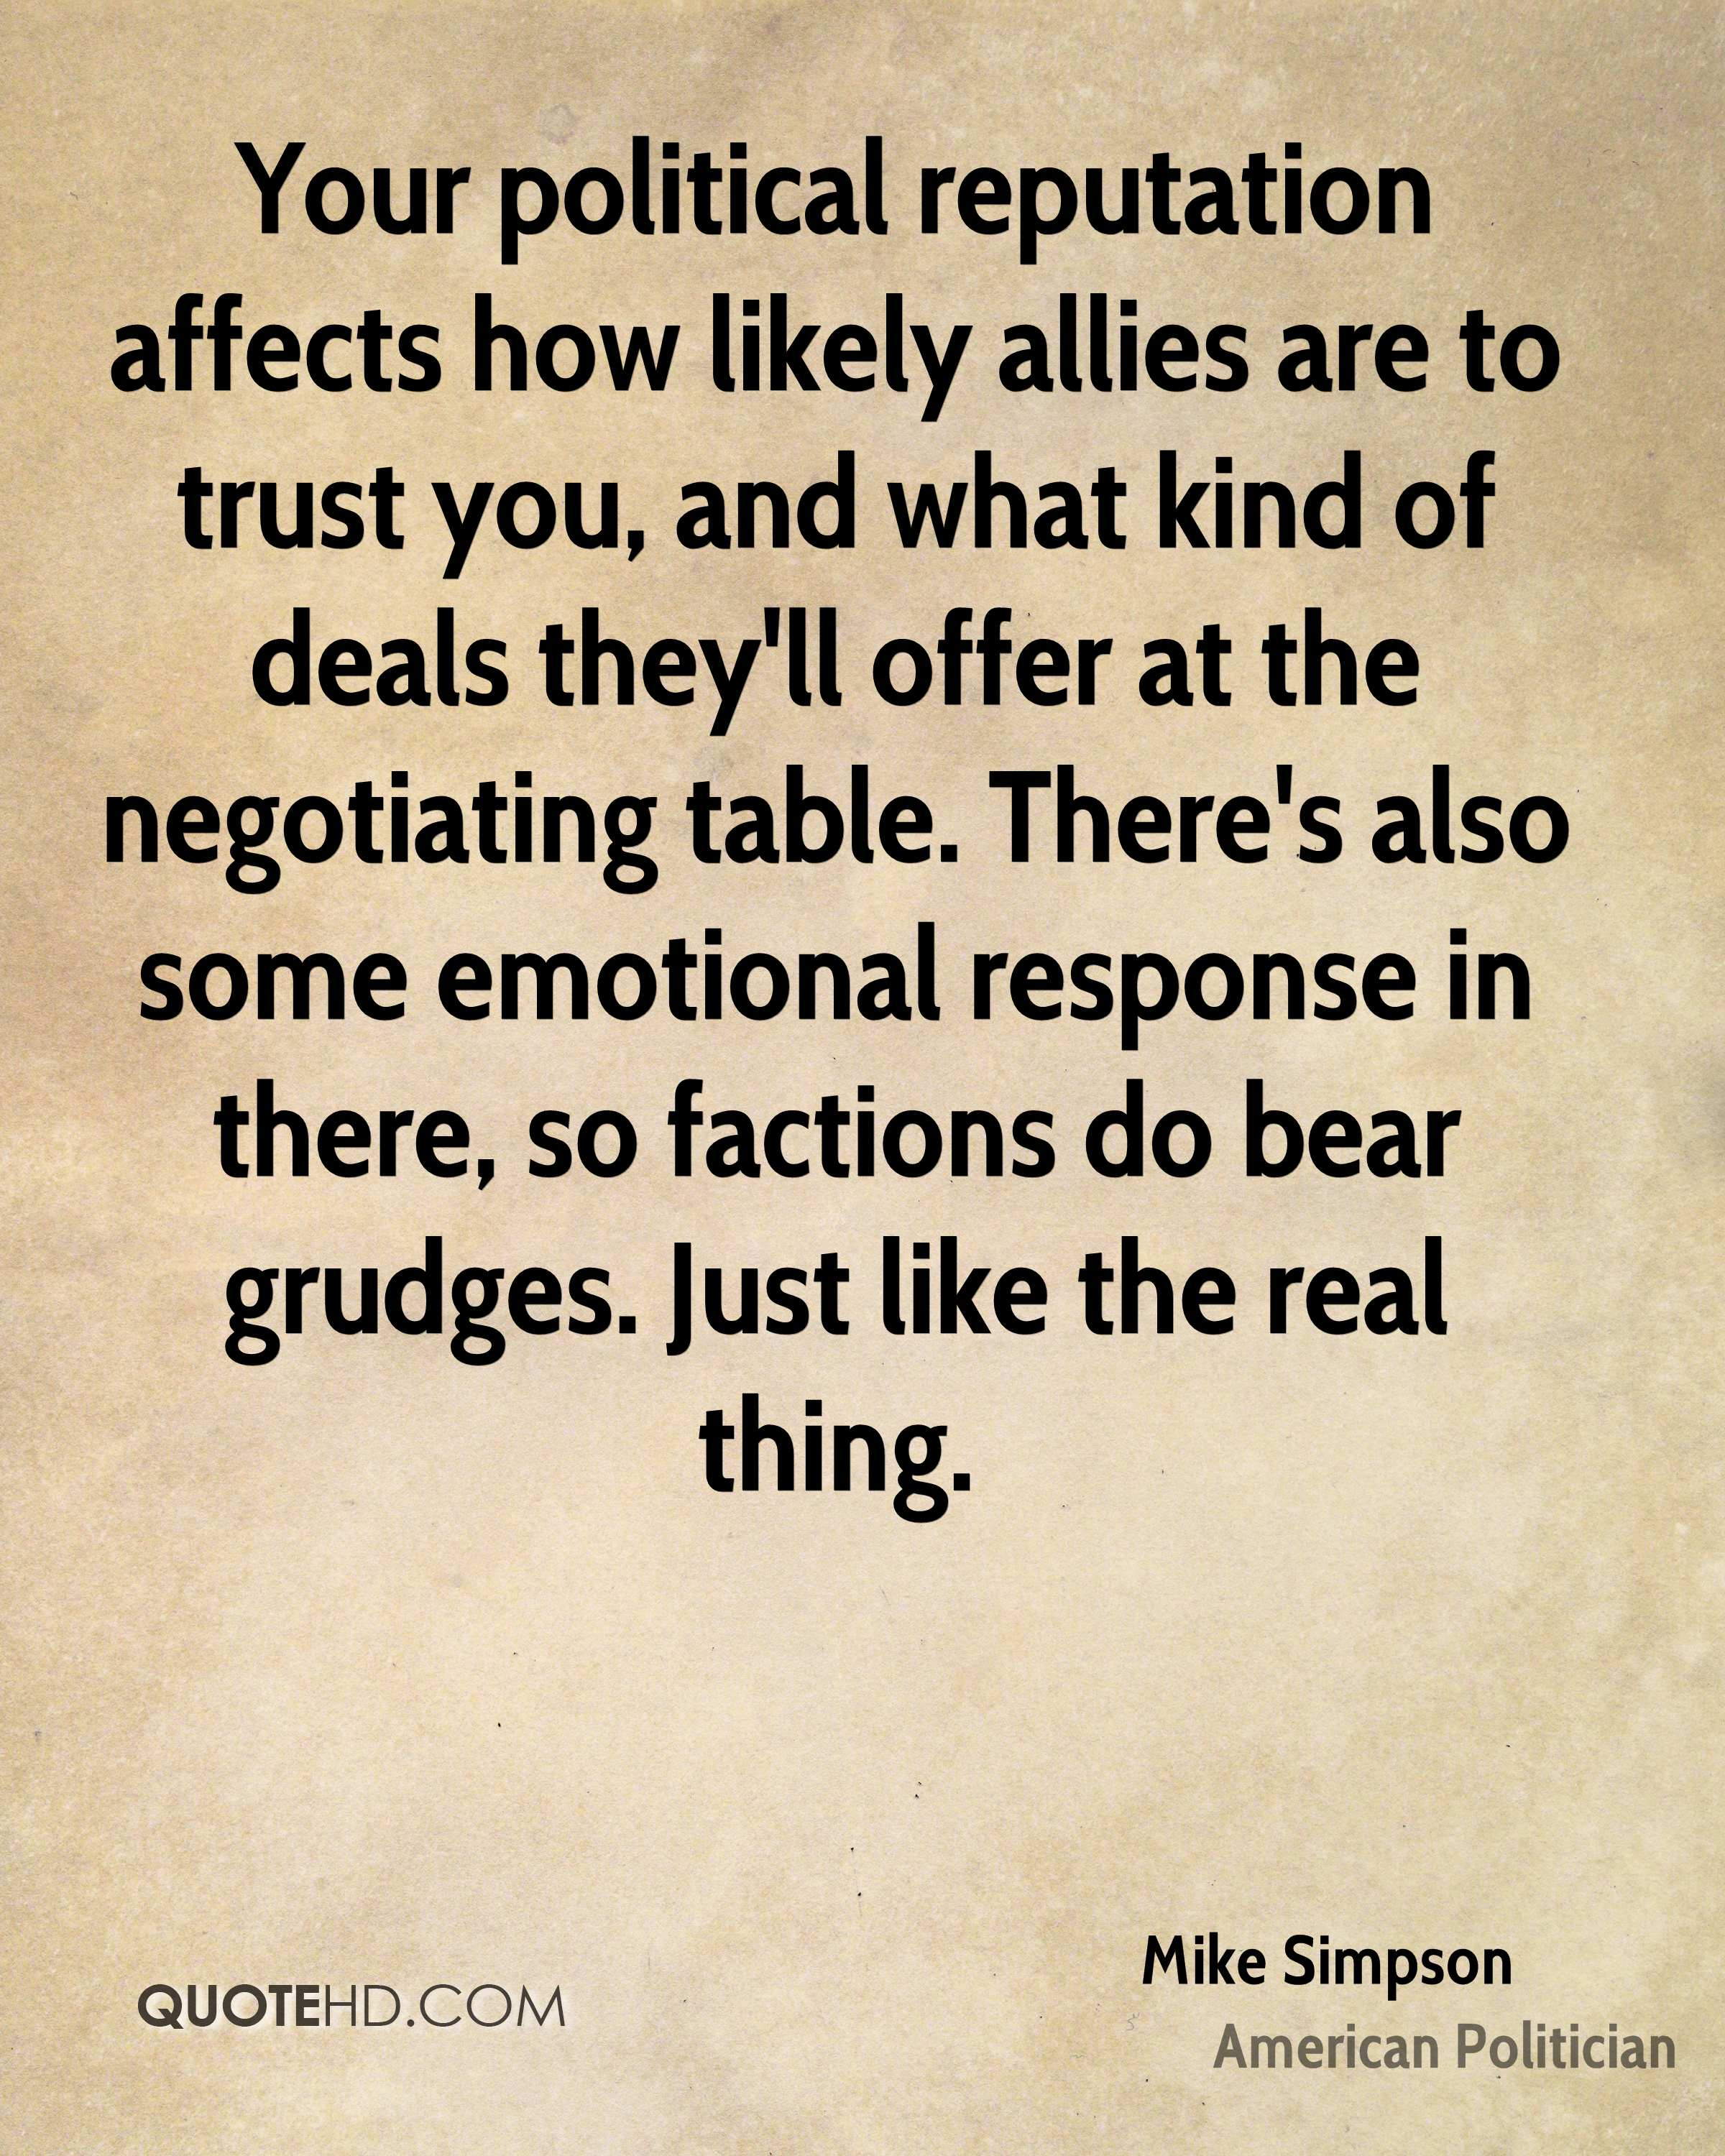 Your political reputation affects how likely allies are to trust you, and what kind of deals they'll offer at the negotiating table. There's also some emotional response in there, so factions do bear grudges. Just like the real thing.